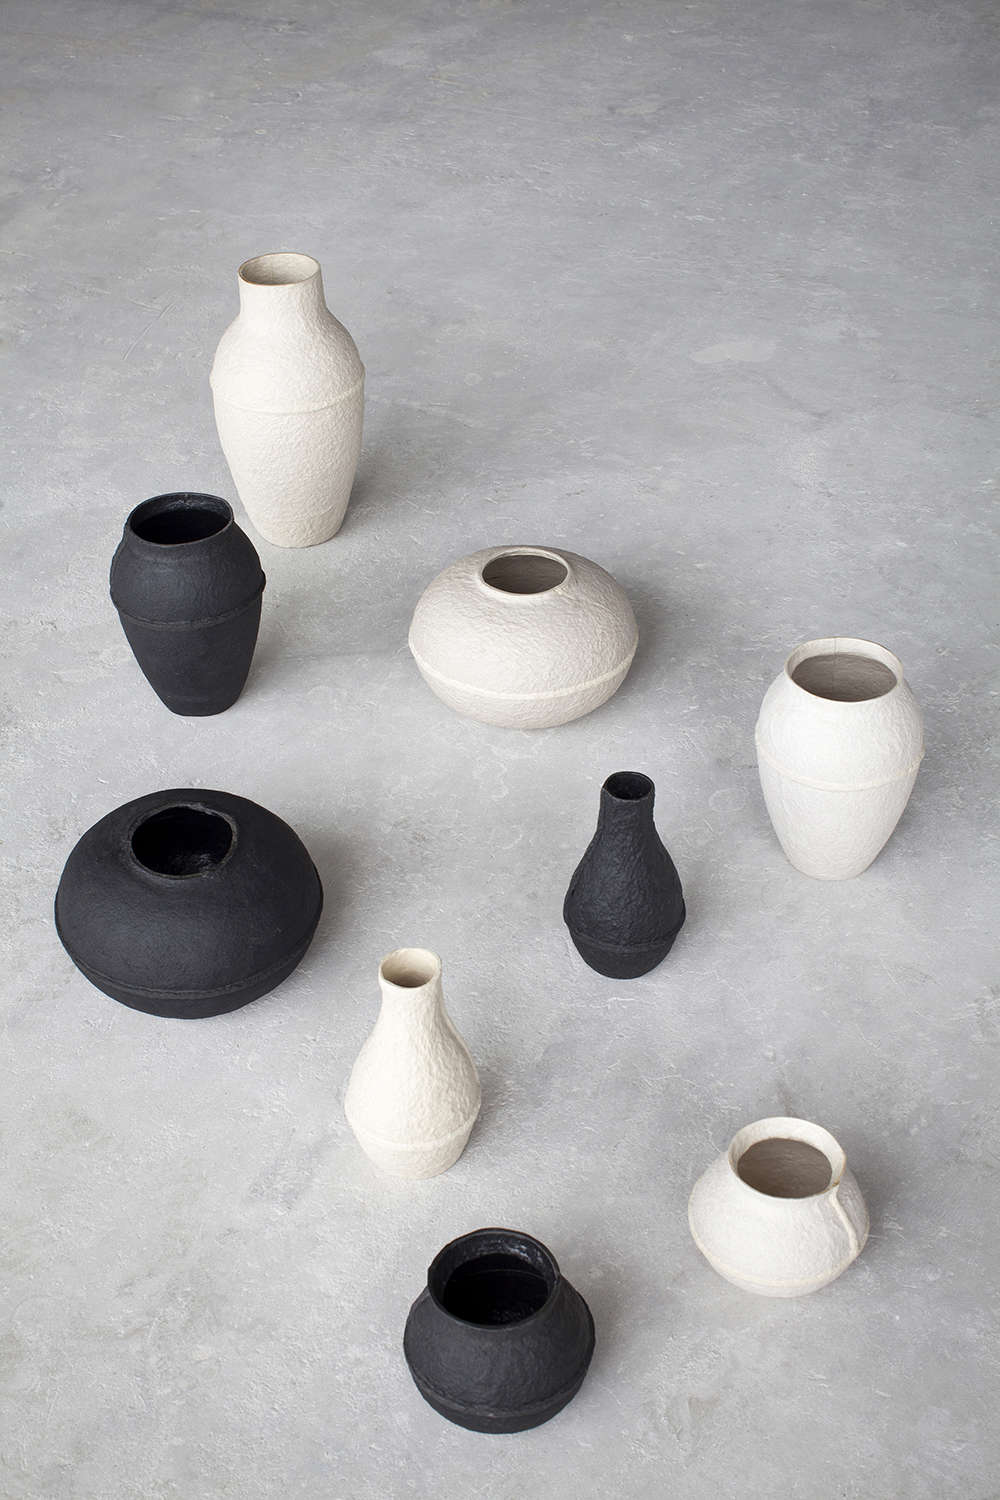 From designer Debbie Wijskamp, aWhite XL Paper Pulp Vase is €54.20 at Serax. For more, see Yesterday's News: Vases Made from Recycled Papers on Gardenista.